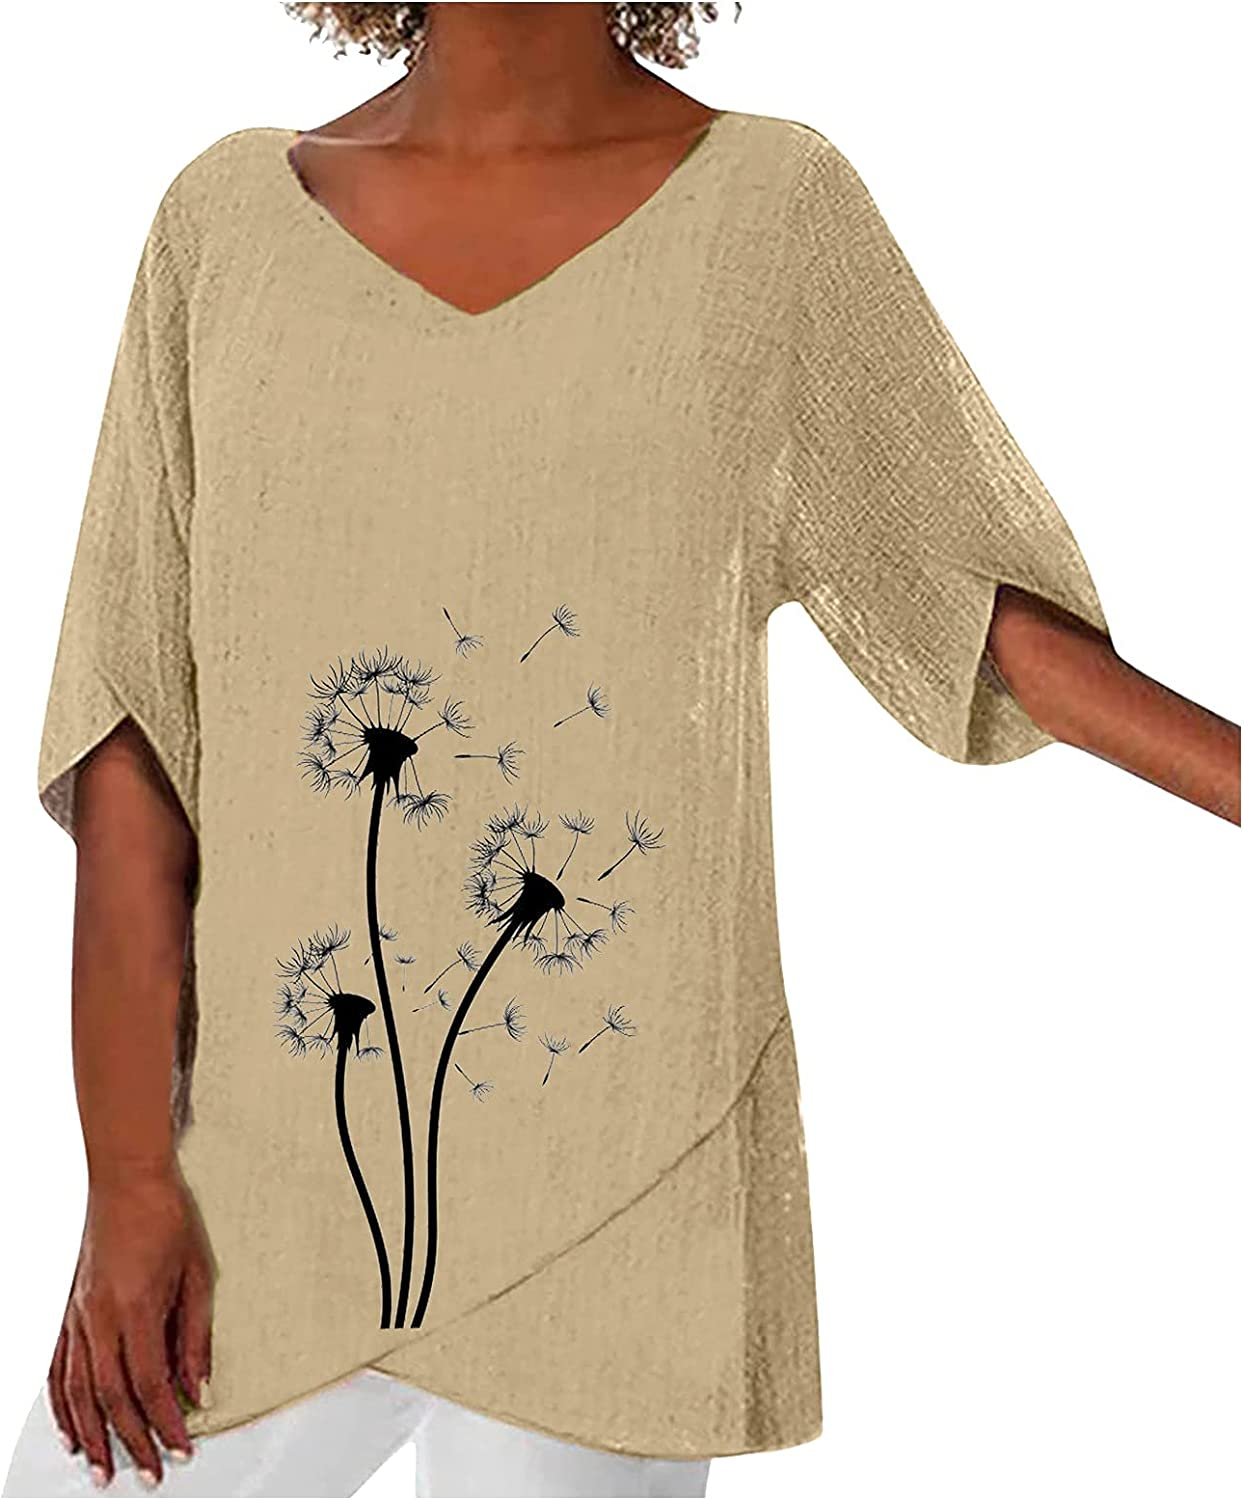 Fankle Blouses for Women Casual Hem Cotton and Linen V Neck Dandelion Printed Half Sleeve Casual Loose Tops